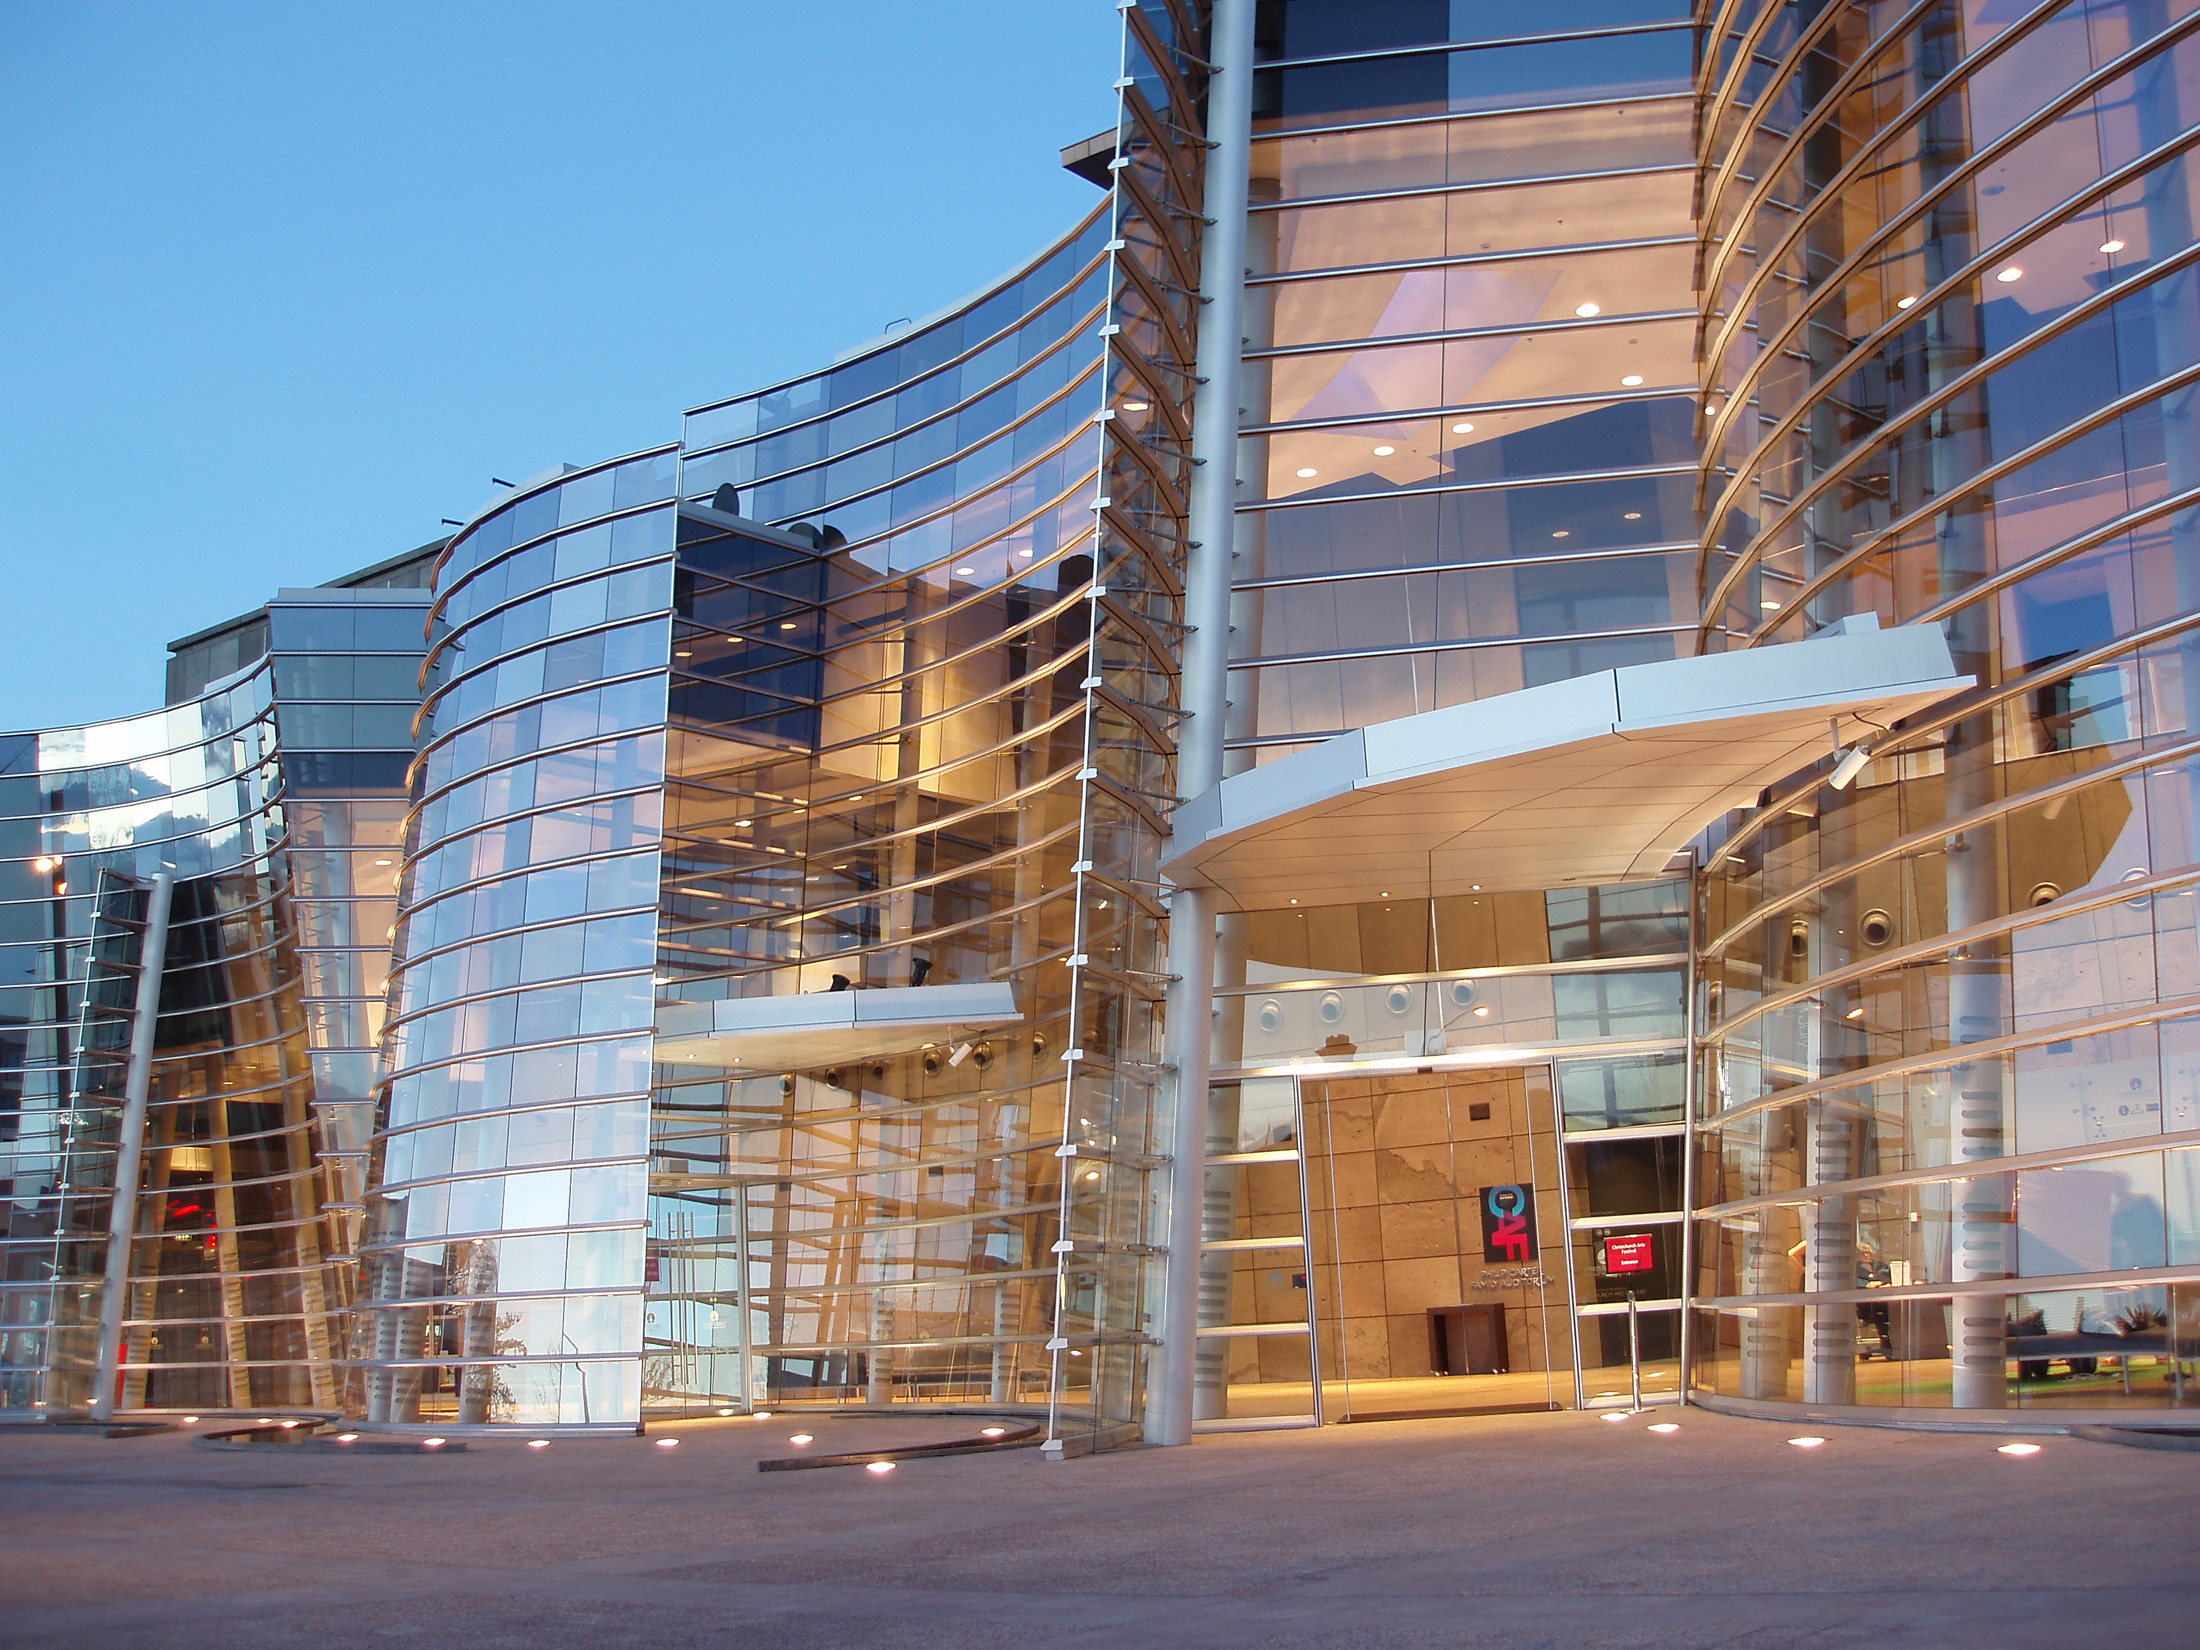 reflective glass font of the christchurch art gallery at sunset,